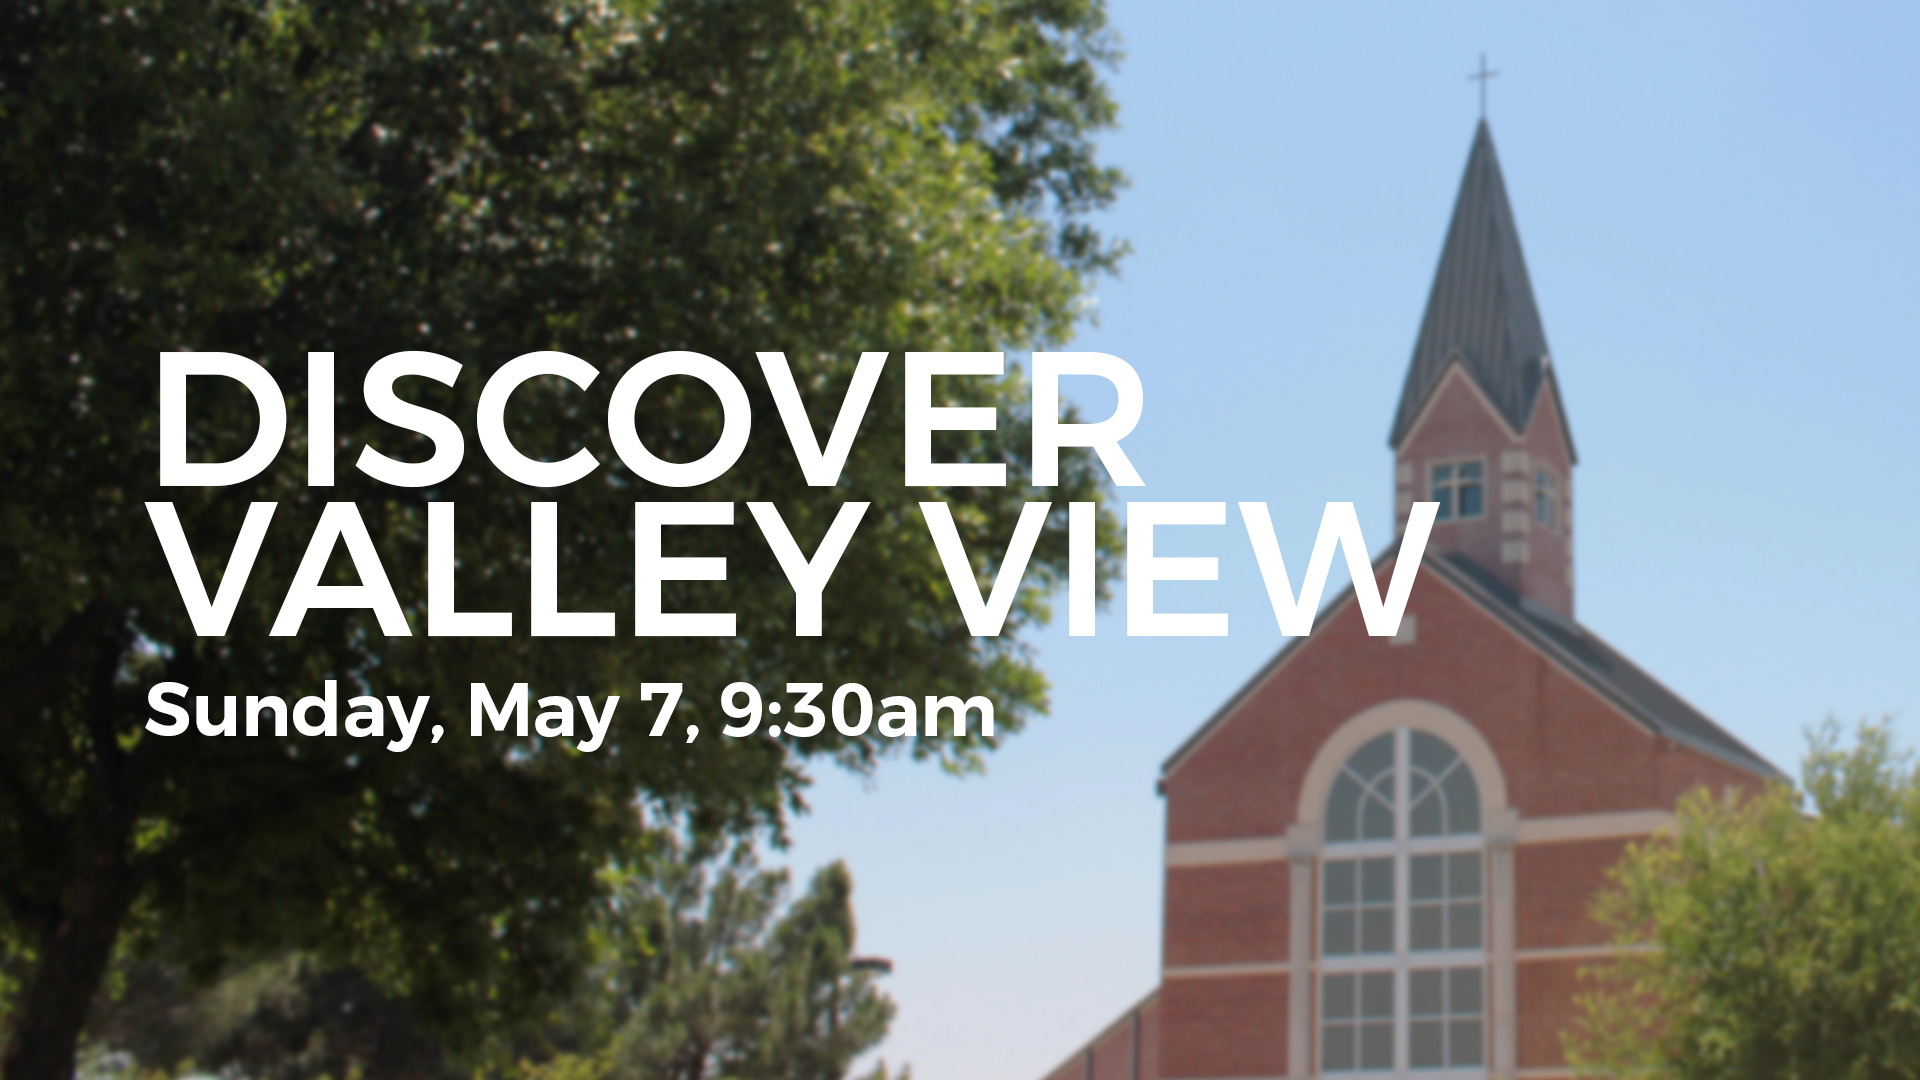 discover valley view